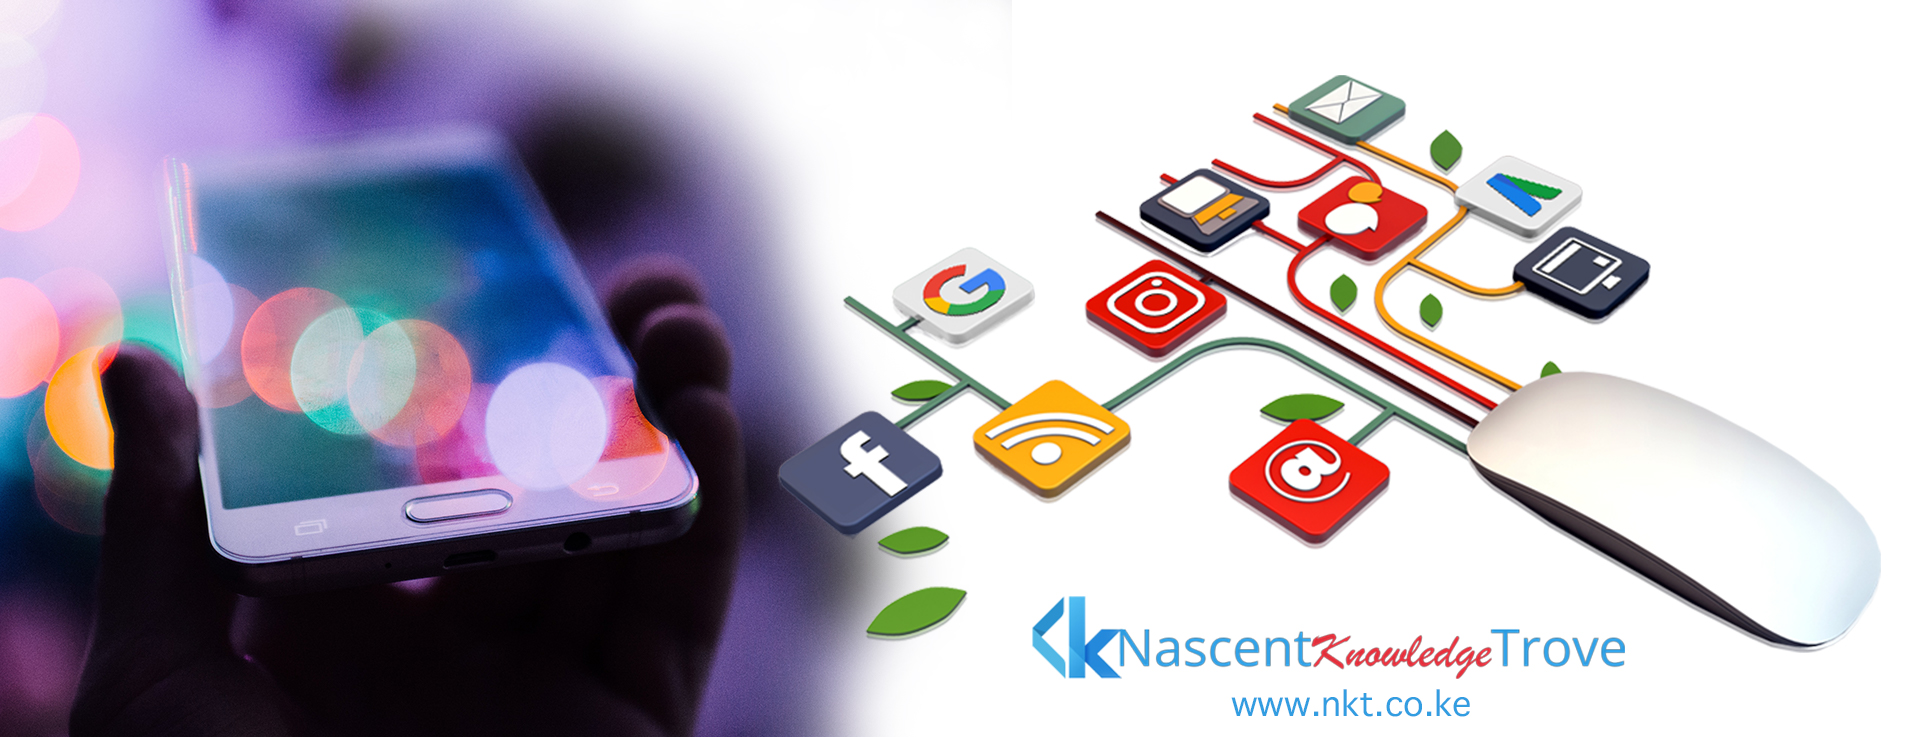 Nascent Knowledge Trove (NKT) Websites & Mobile Apps Development, Visuals Production, Digital Marketing and Data Analytics.